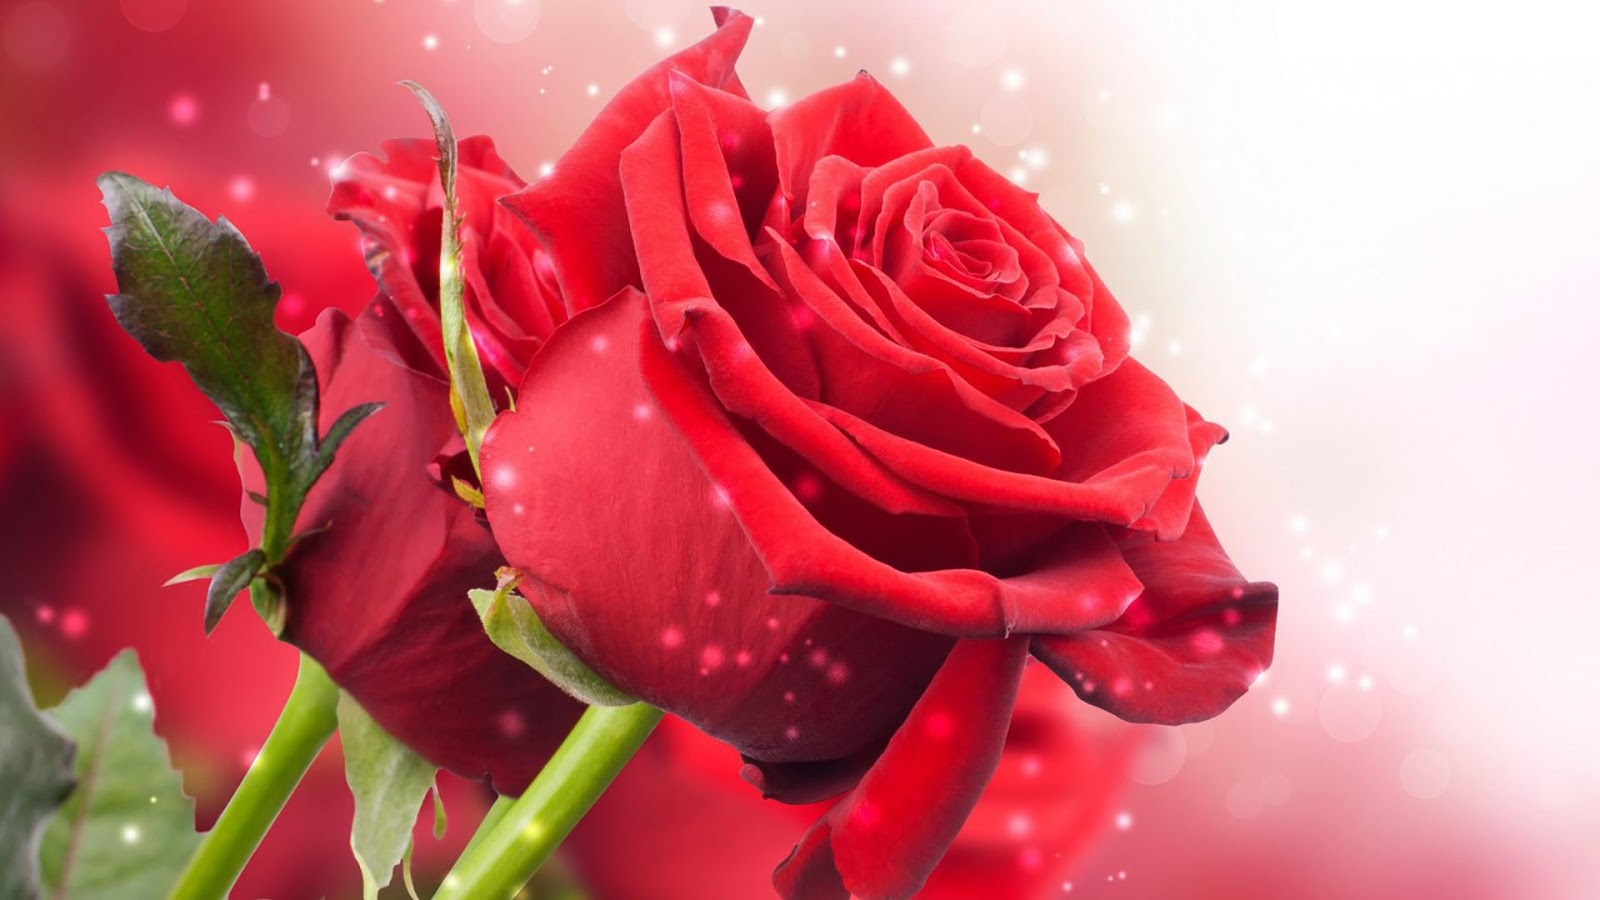 Latest hd wallpapers for you free download many beautiful flowers in the world but my flower is you your most beautiful than others i love my lovely rose happy rose day dear izmirmasajfo